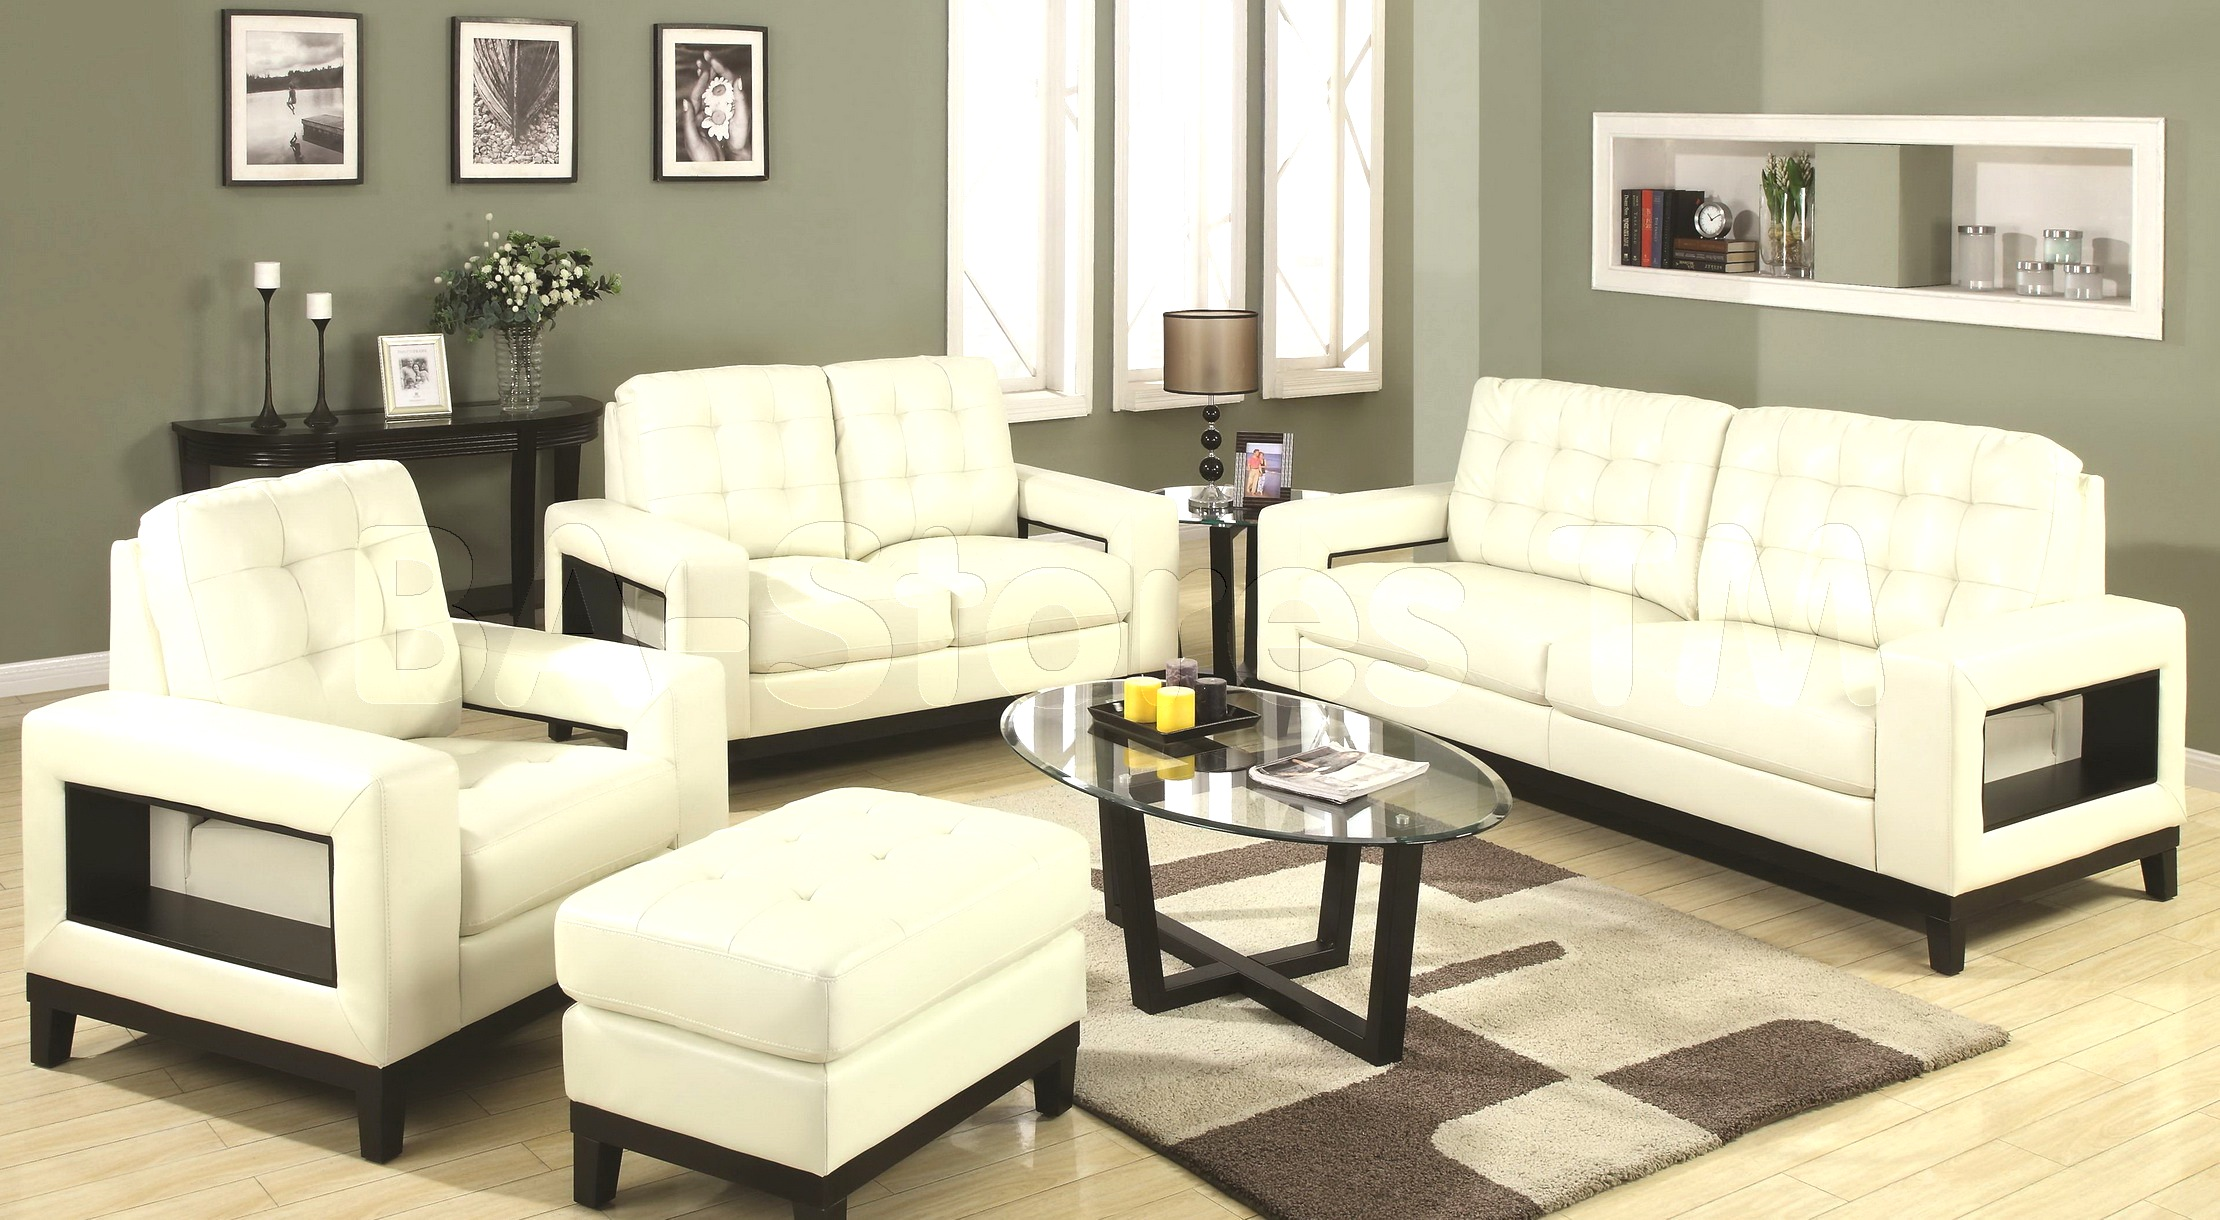 White living room furniture sets roselawnlutheran - Living room sofa sets decoration ...